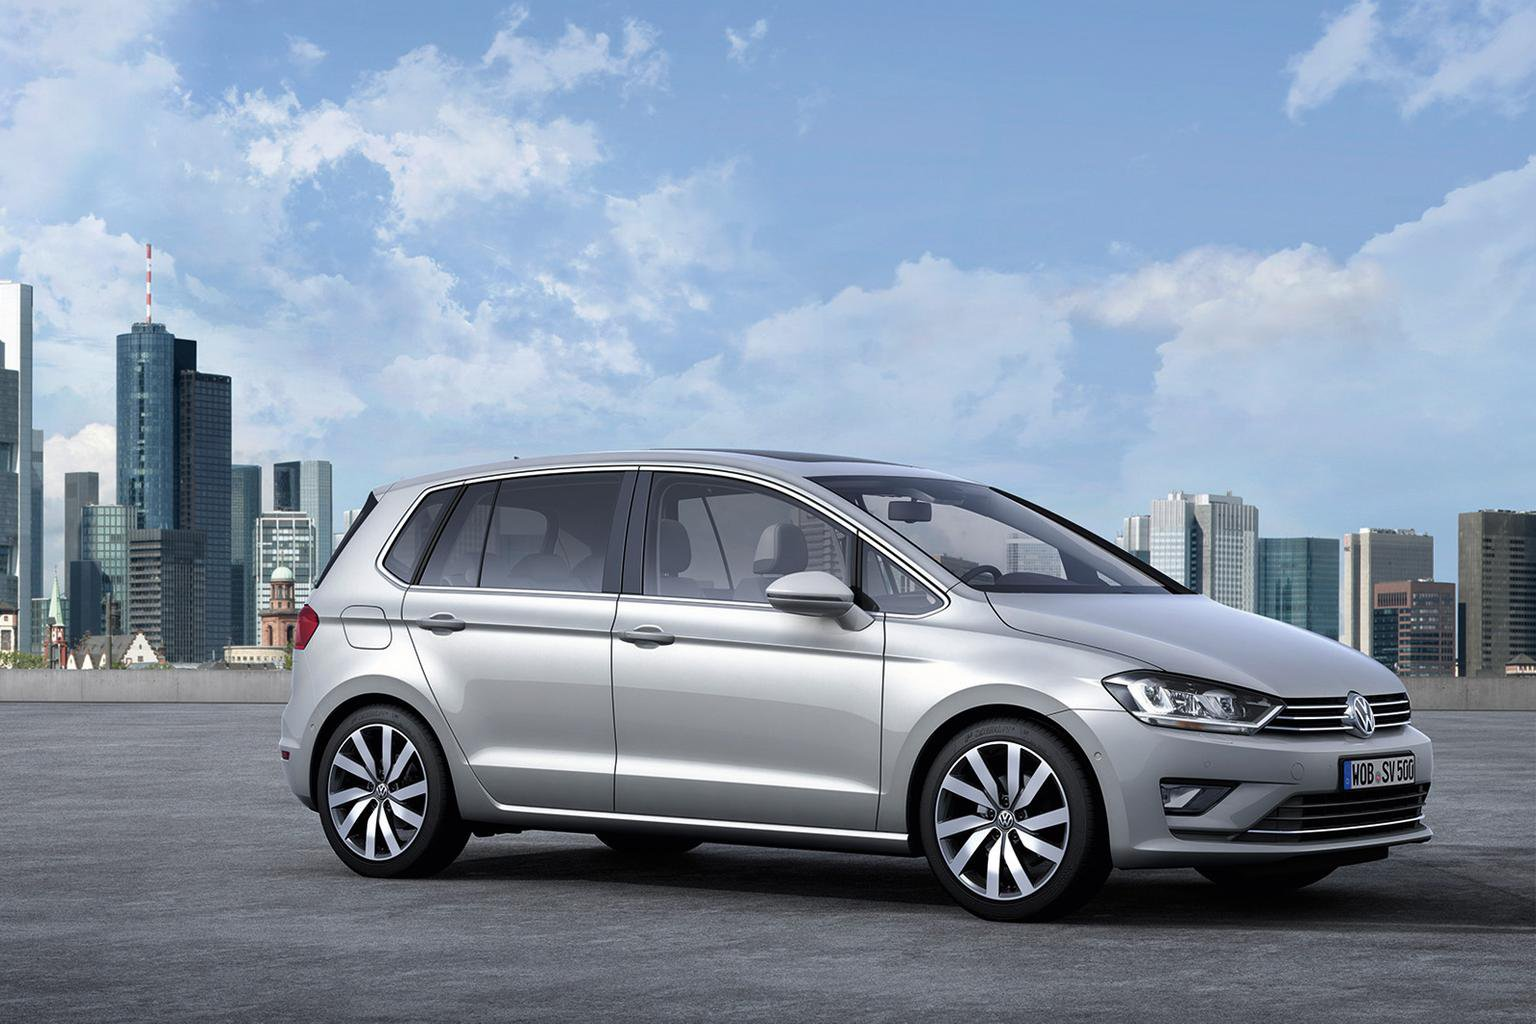 Volkswagen Golf SV - all you need to know